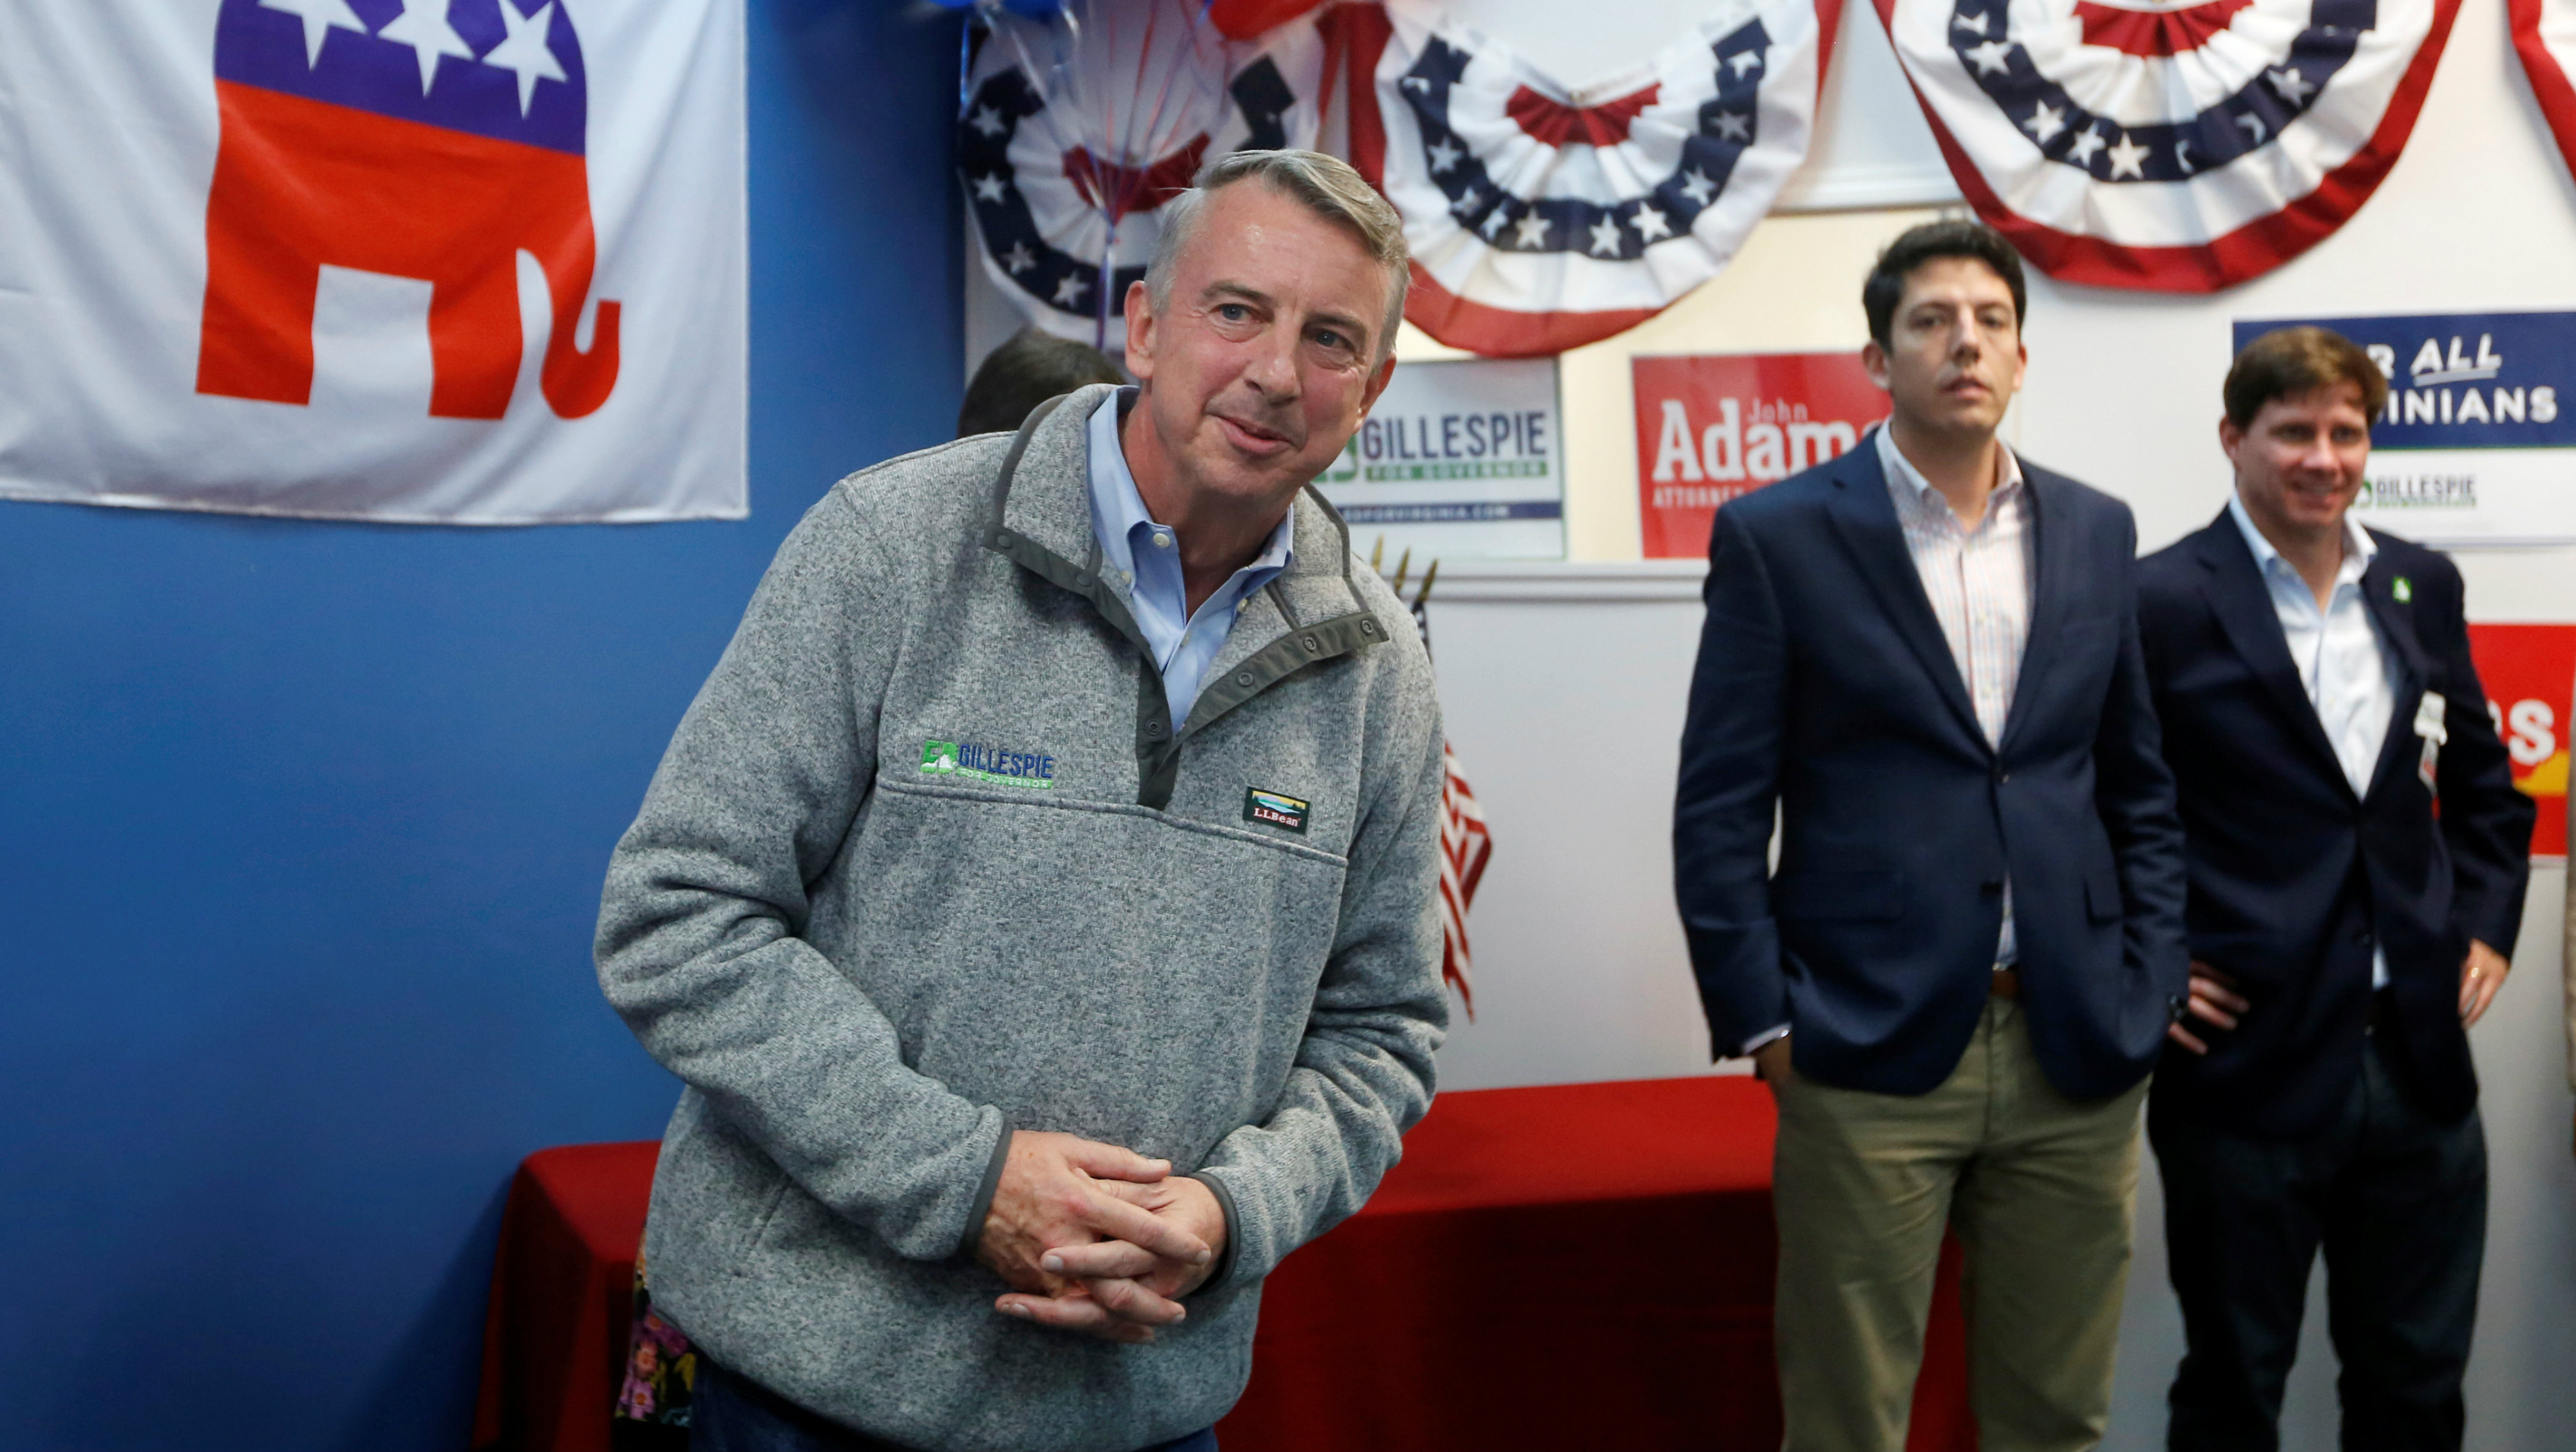 Republican Party contender Ed Gillespie, who is campaigning to be elected as Virginia's governor, greets supporters during a rally in Chesapeake, Virginia, U.S. November 6, 2017.